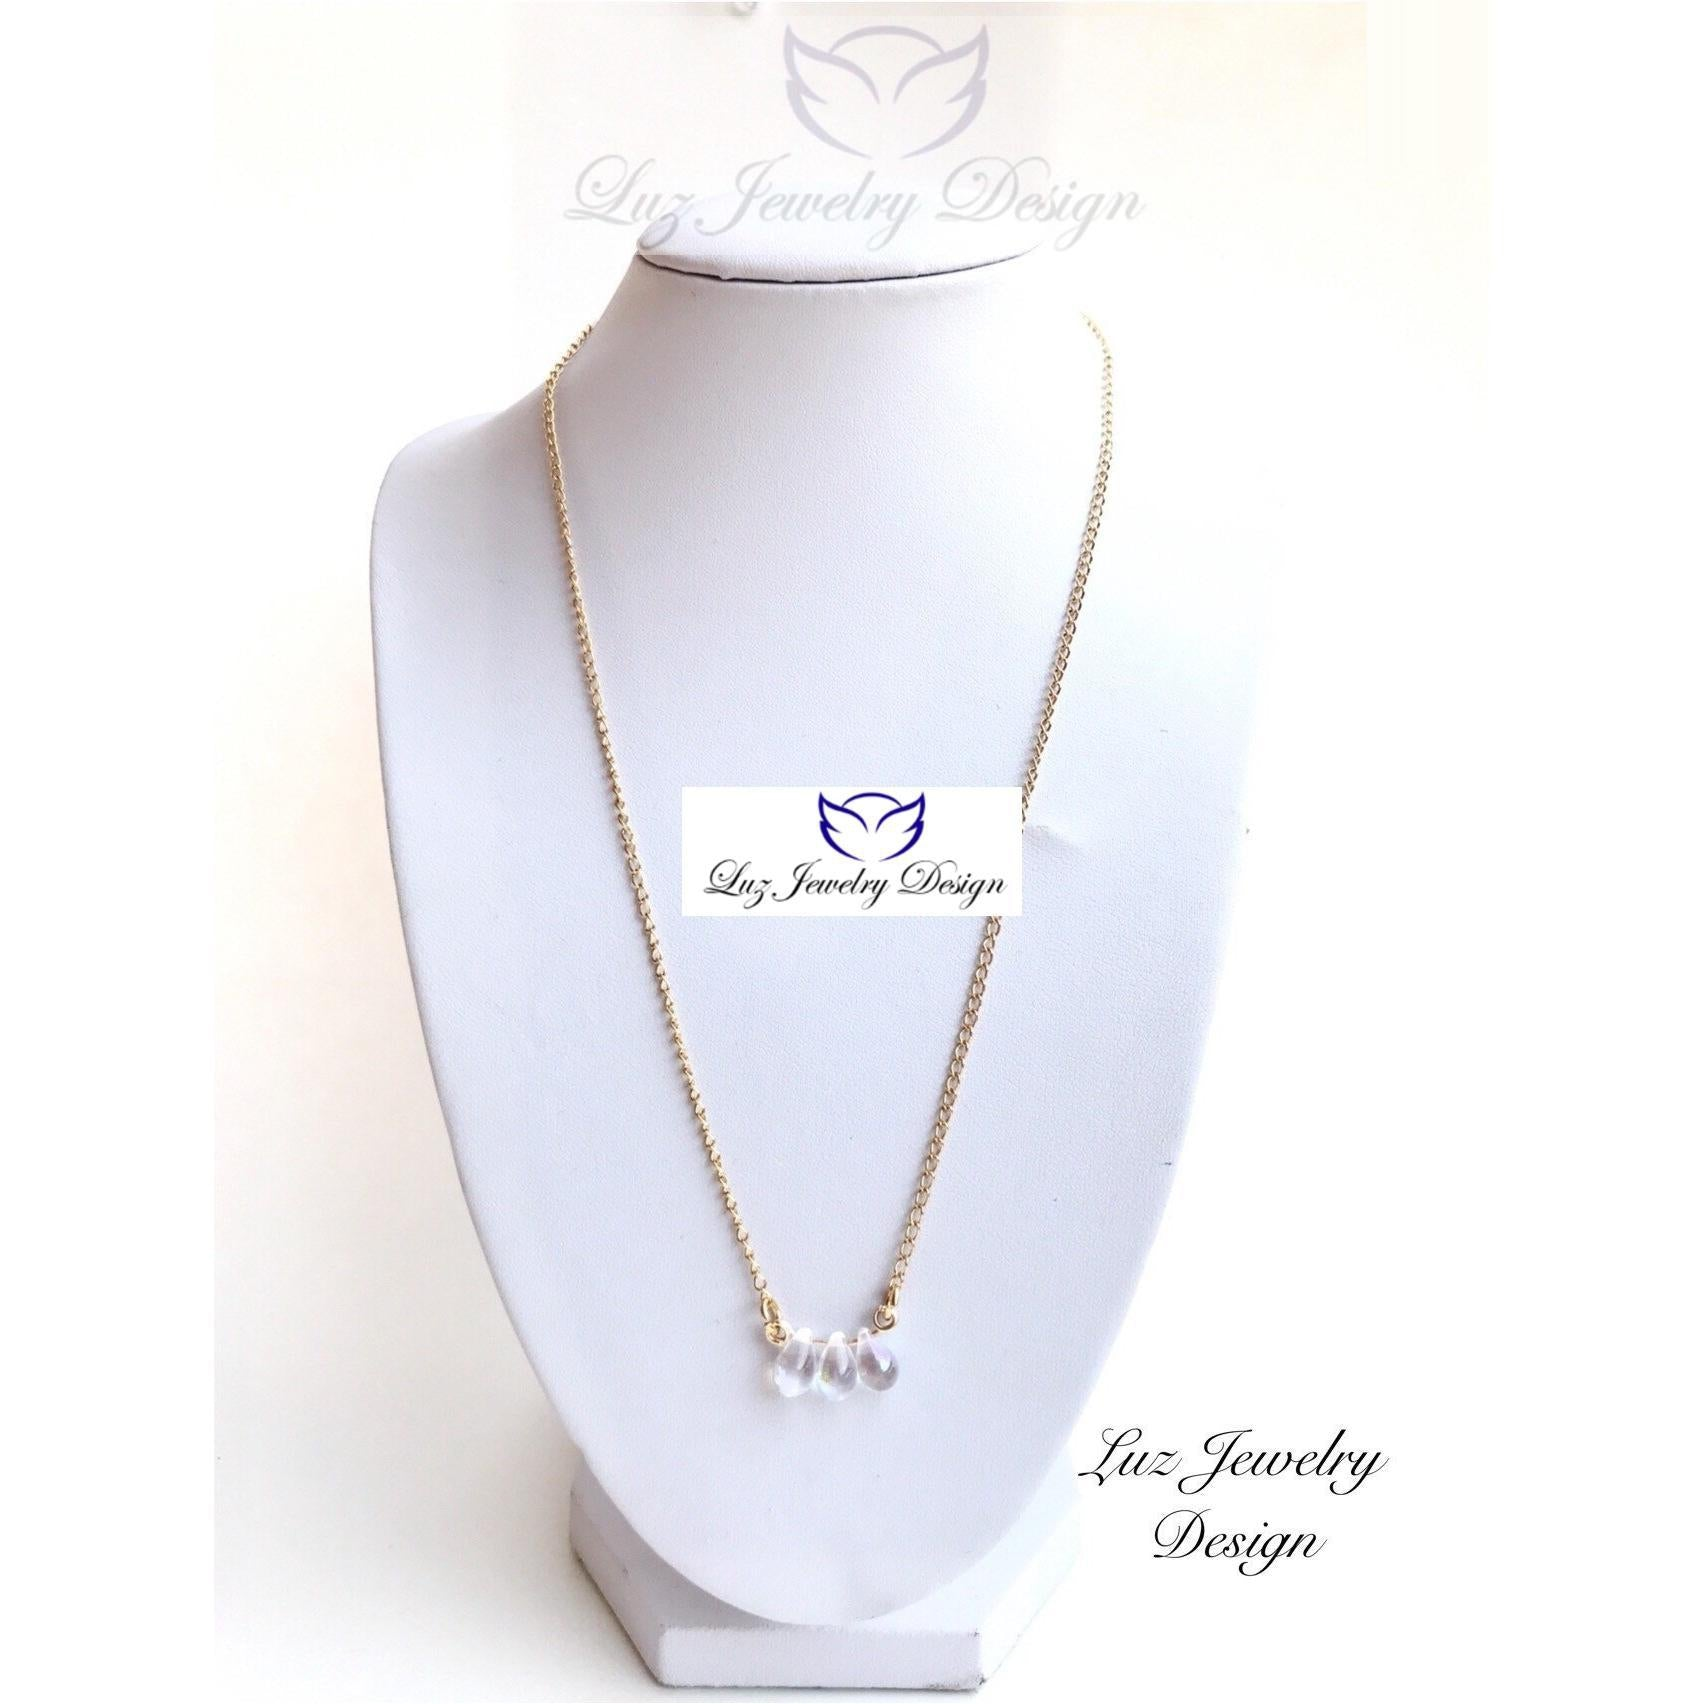 Crystal pendant necklace - crystal necklace - Luzjewelrydesign